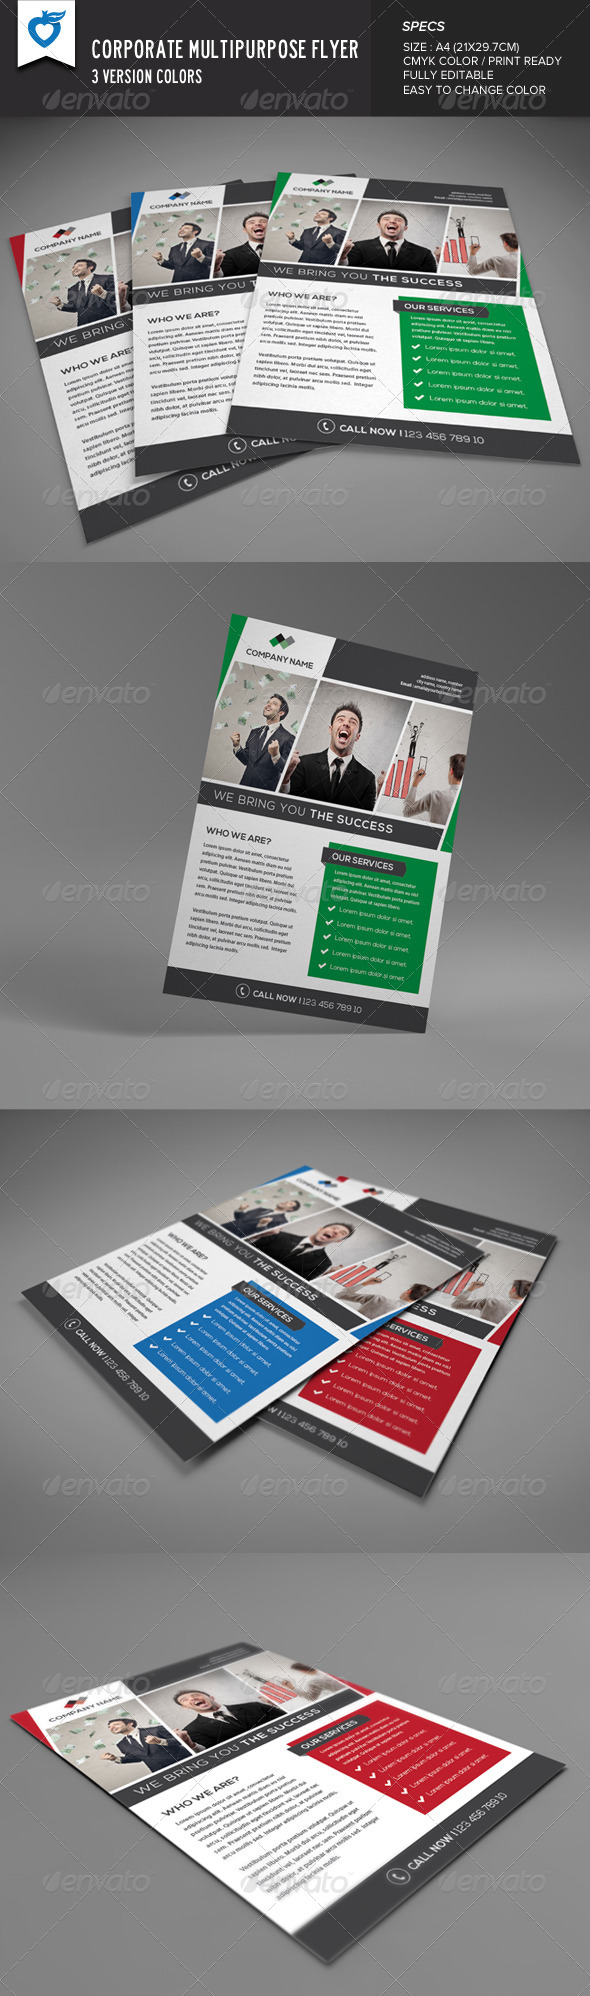 GraphicRiver Corporate Multipurpose Flyer 8405011